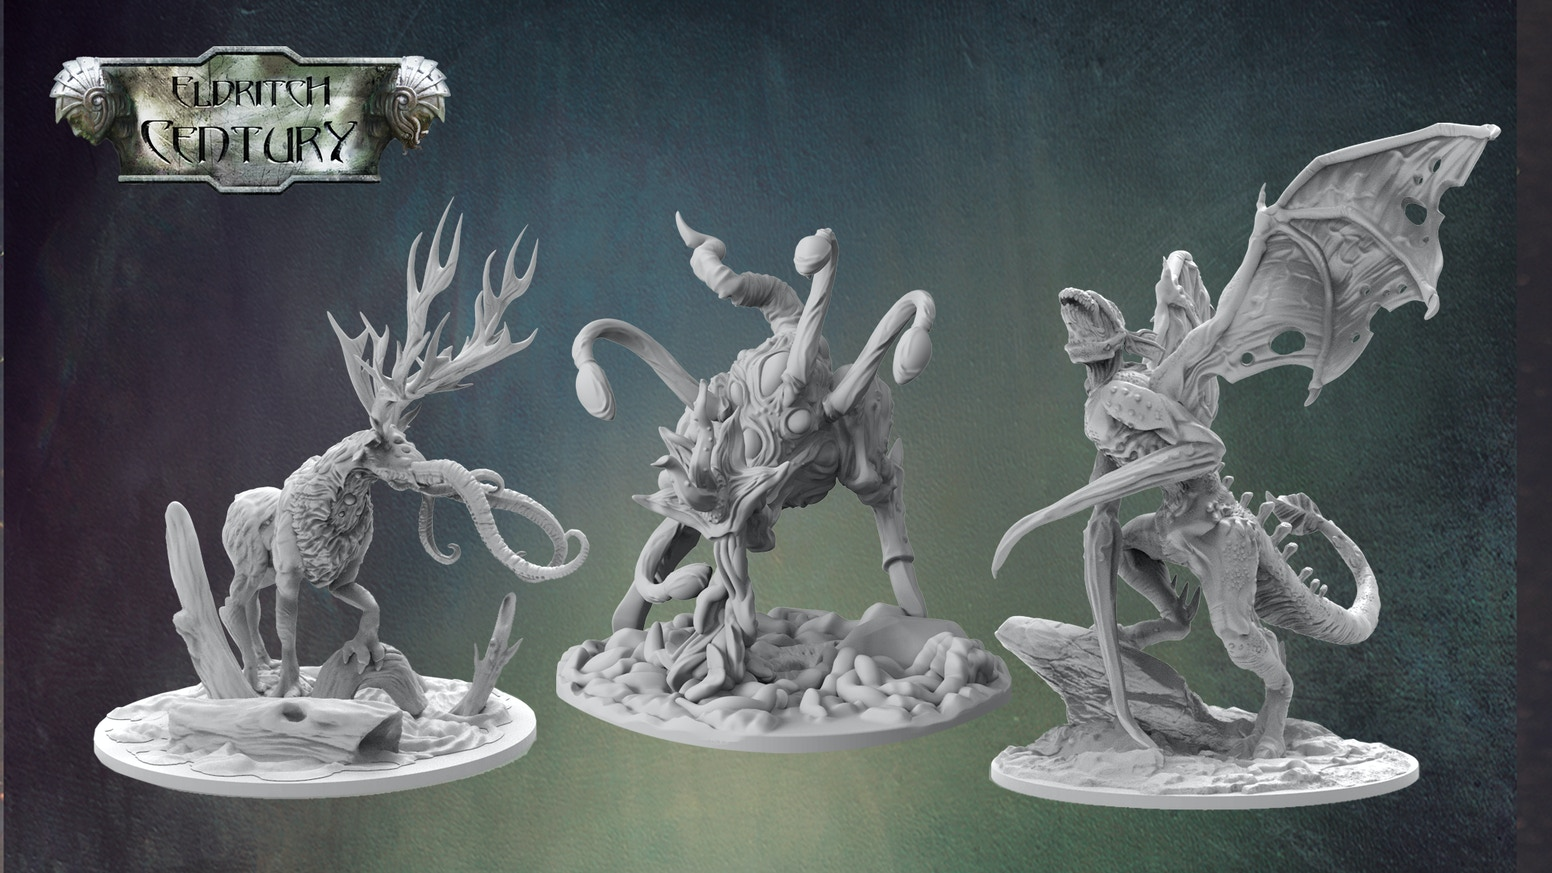 High-Quality Resin Monster Miniatures for the universe of Eldritch Century. Digital RPG content for the setting.